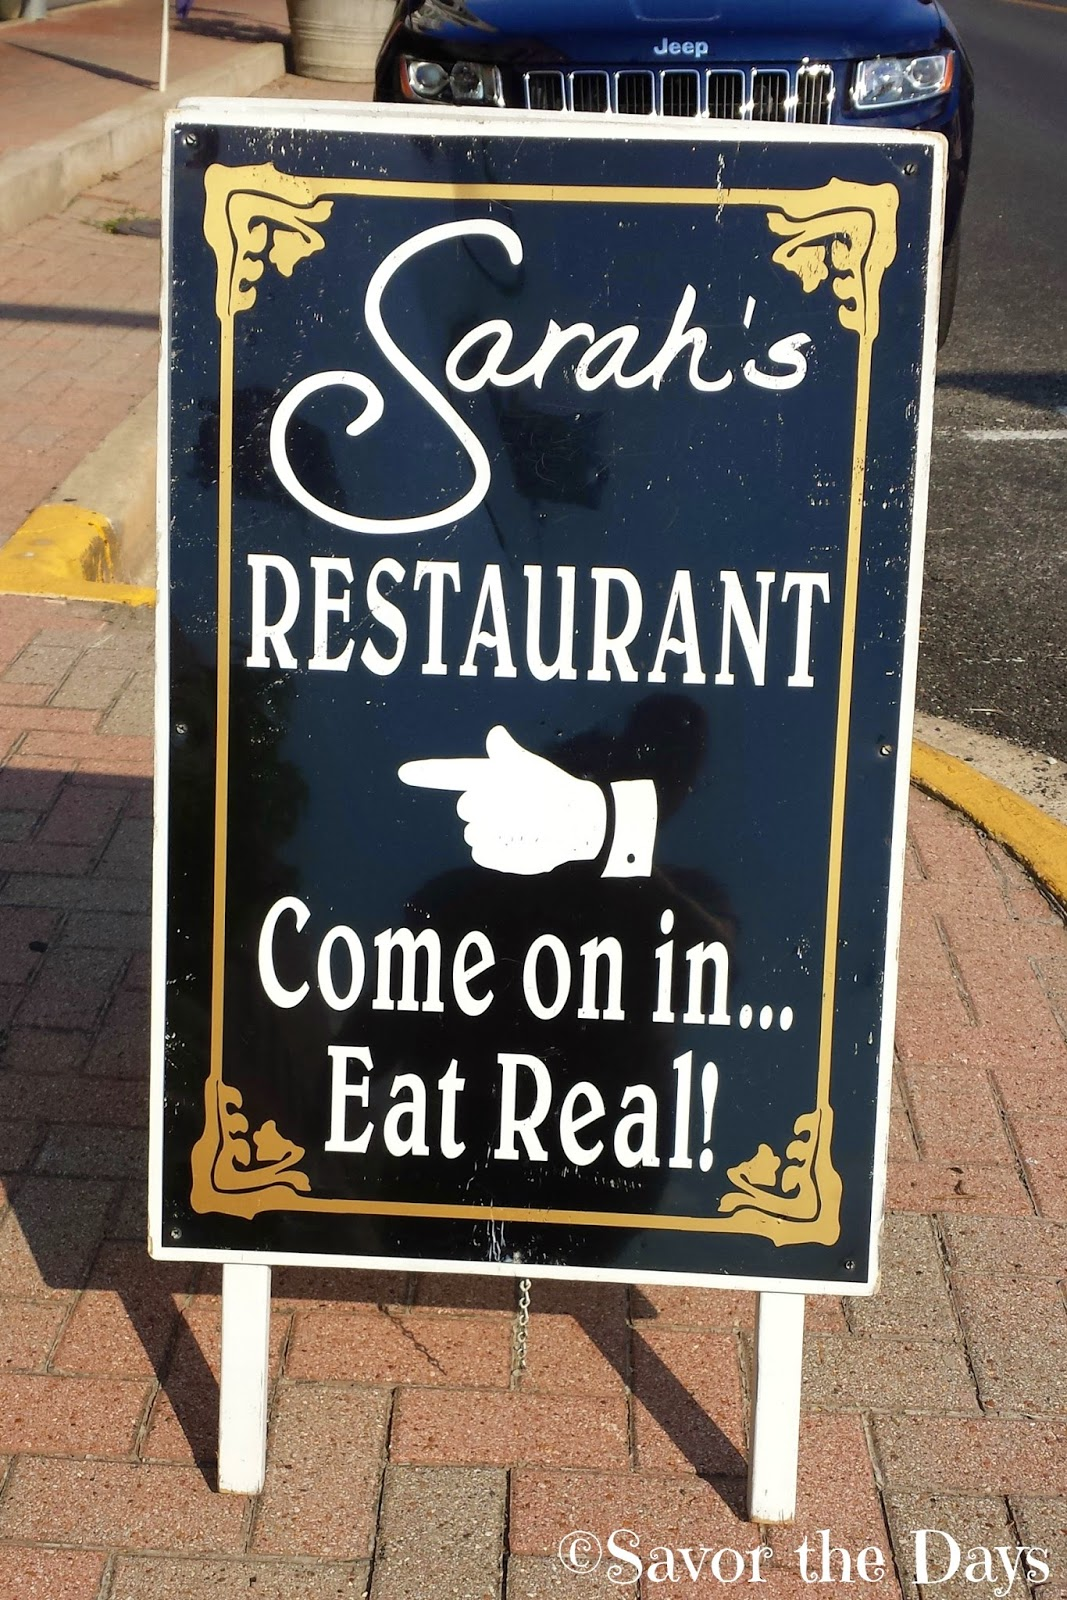 Sarah's on the Square in Gainesville, TX